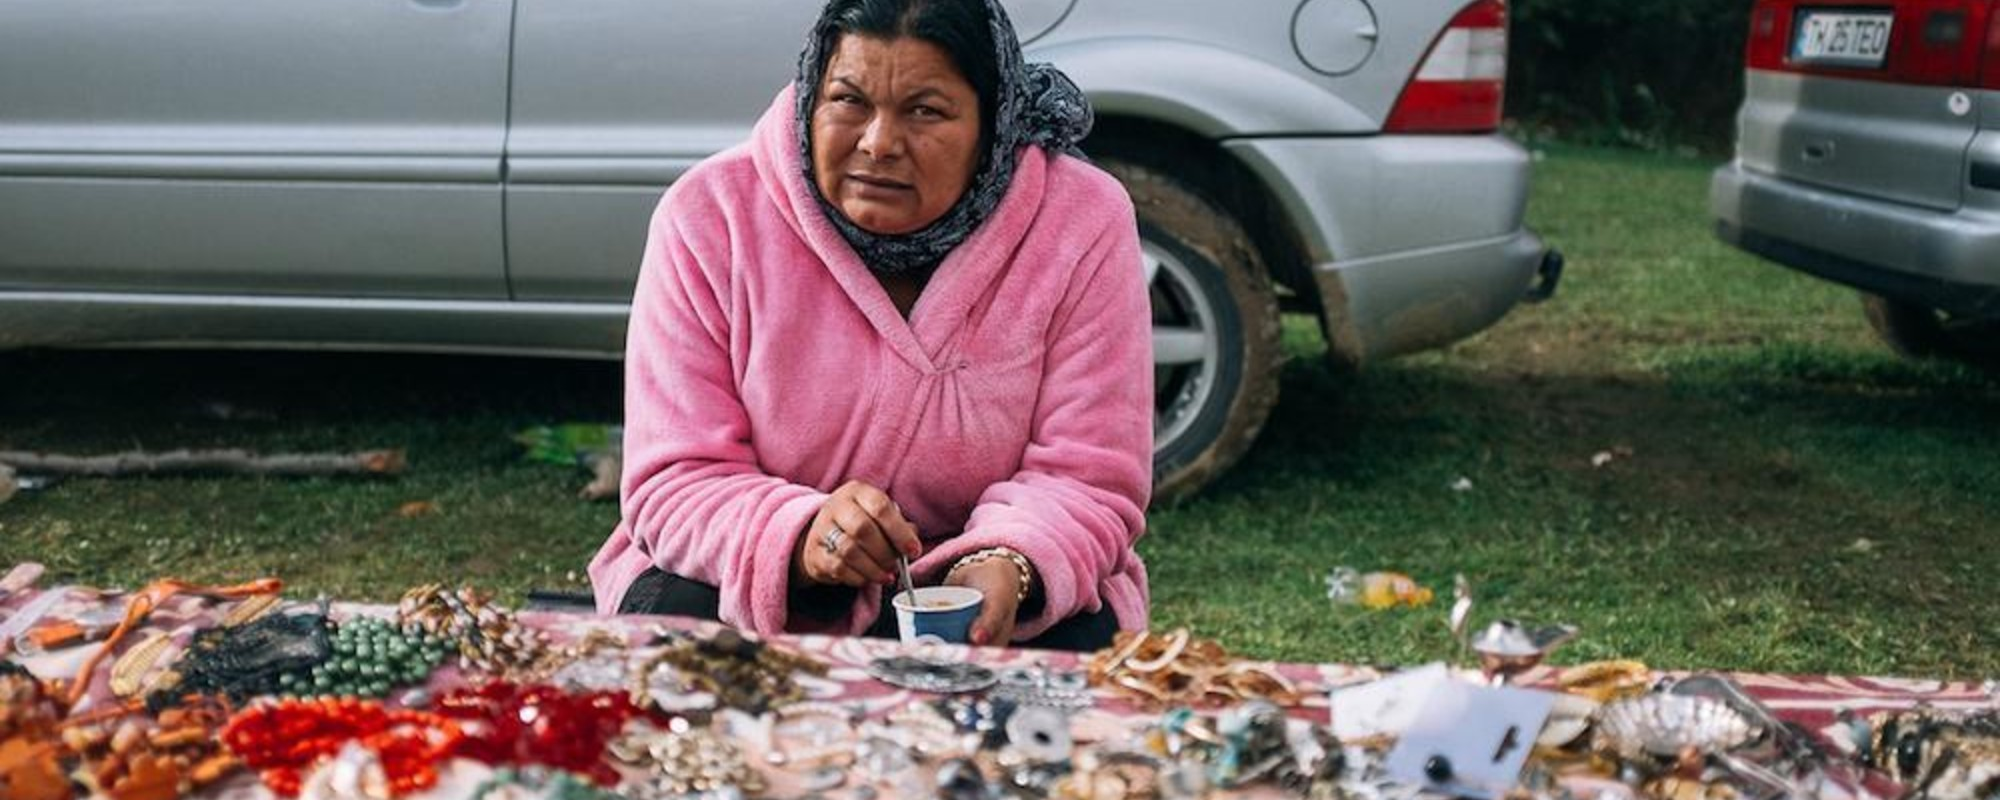 Colourful Photos from One Of Eastern Europe's Biggest Car Boot Sales